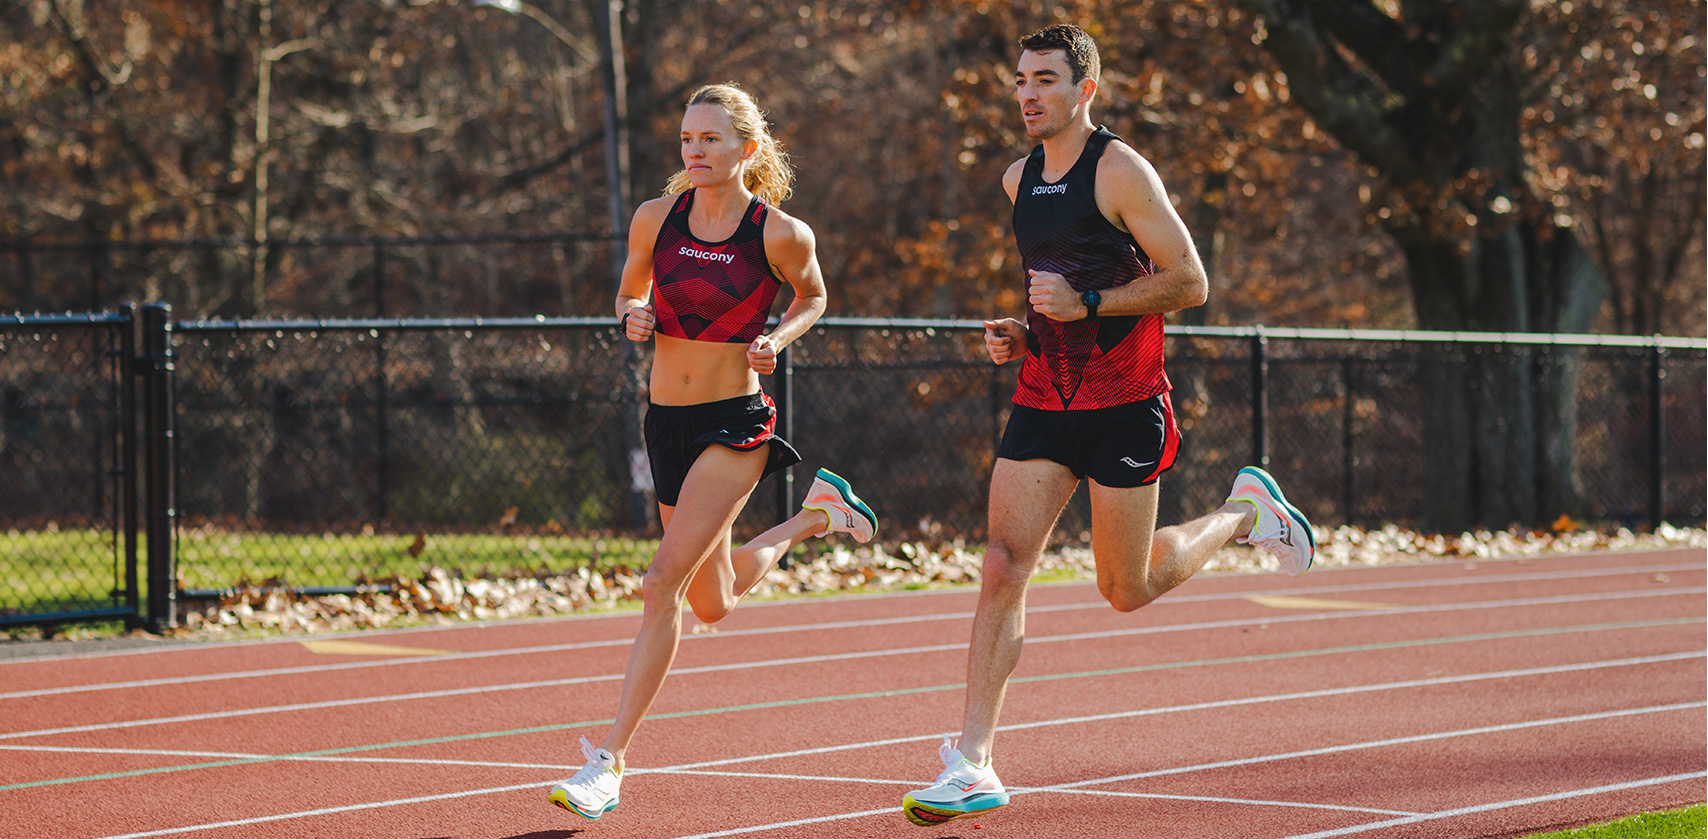 Man and woman running on a track with Saucony apparel and running shoes.